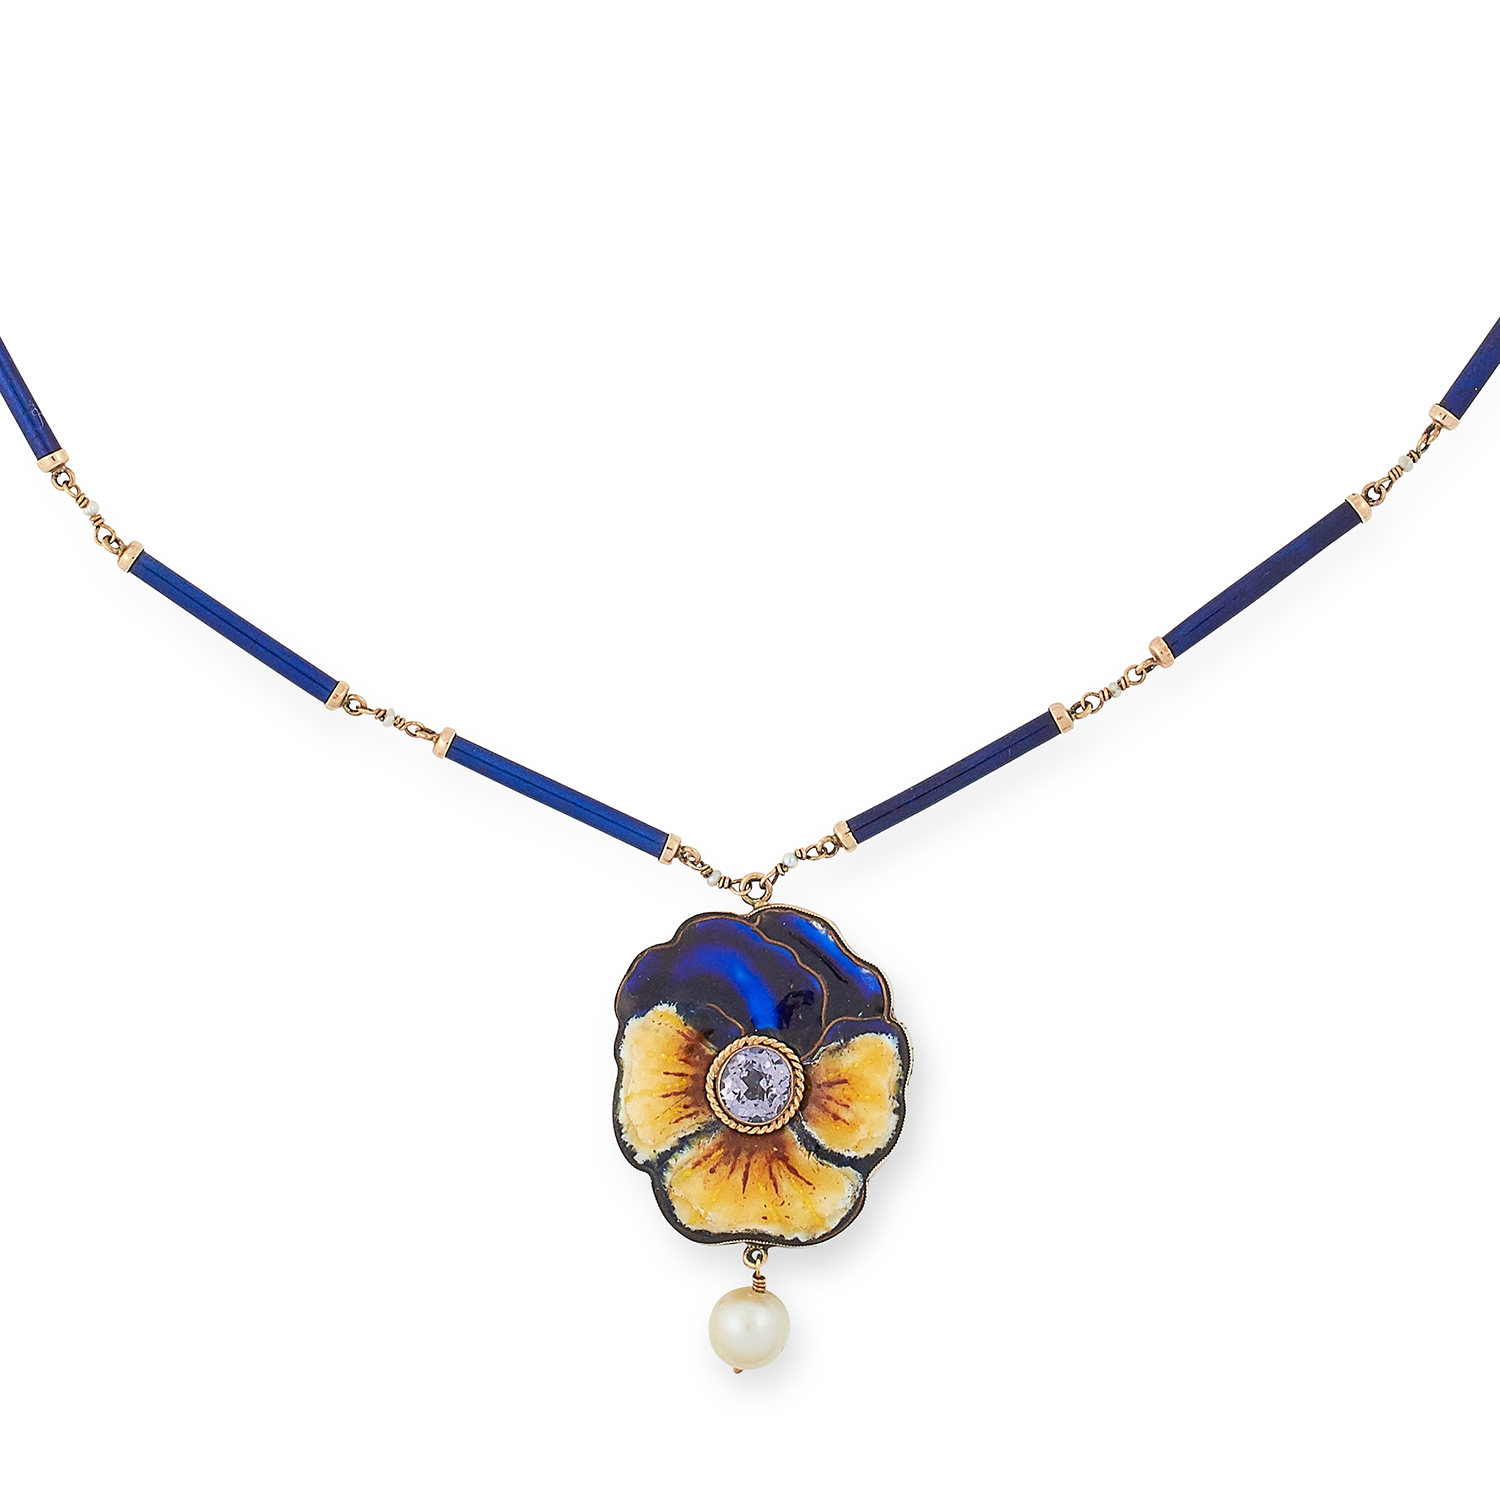 ANTIQUE ENAMELLED PANSY NECKLACE set with a purple faceted stone and a pearl, 43.5cm, 11g.